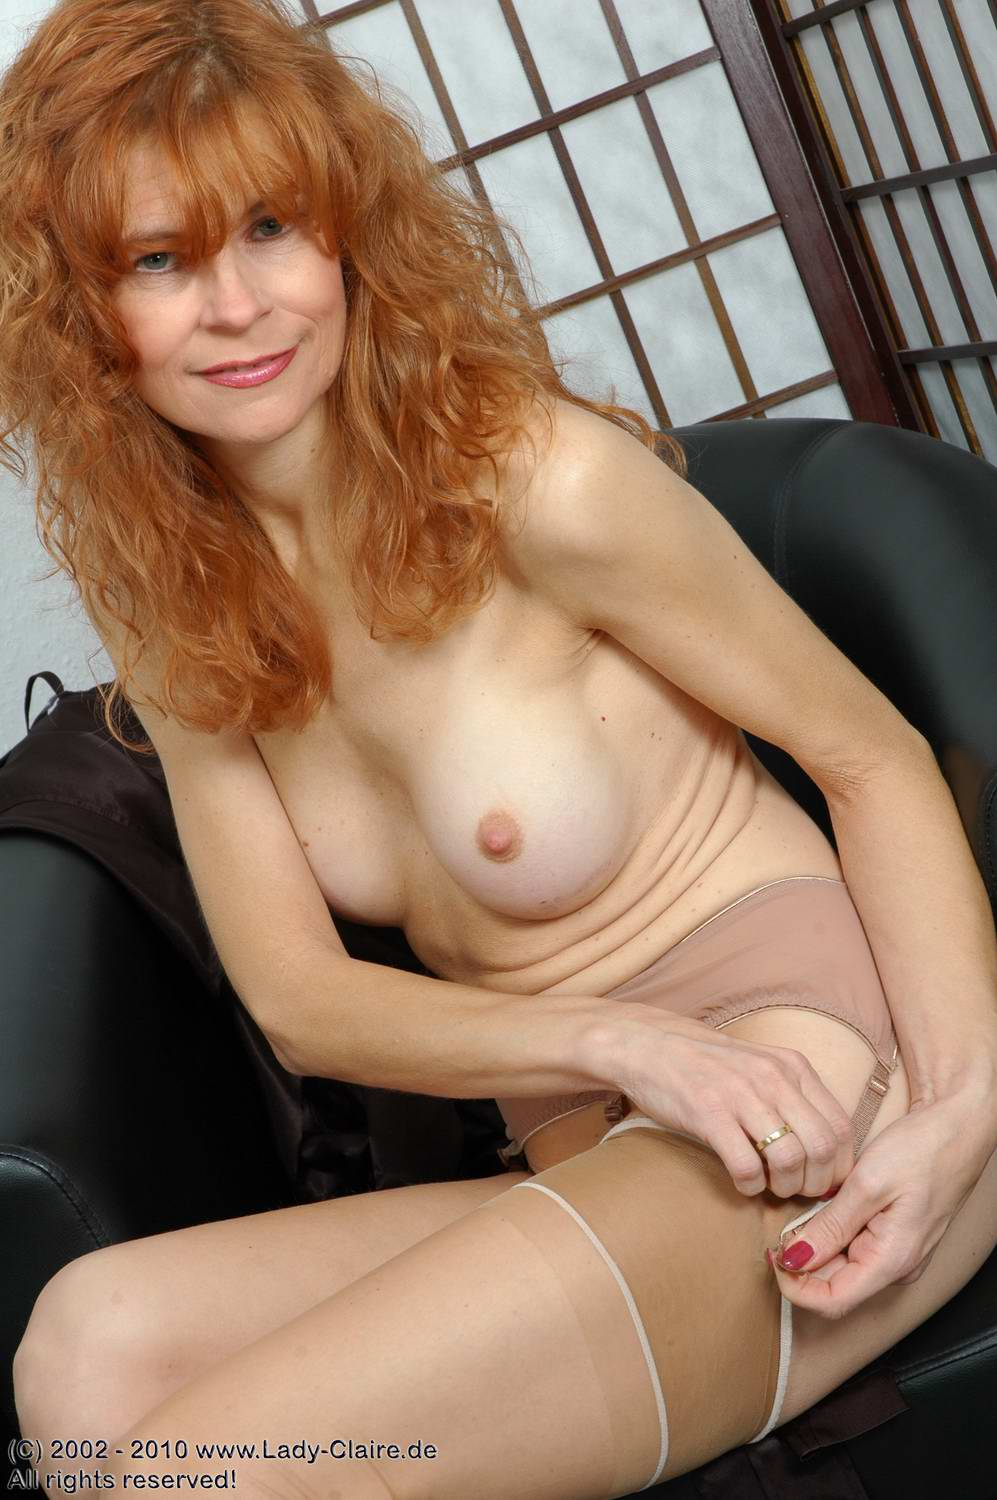 old woman sexy nude